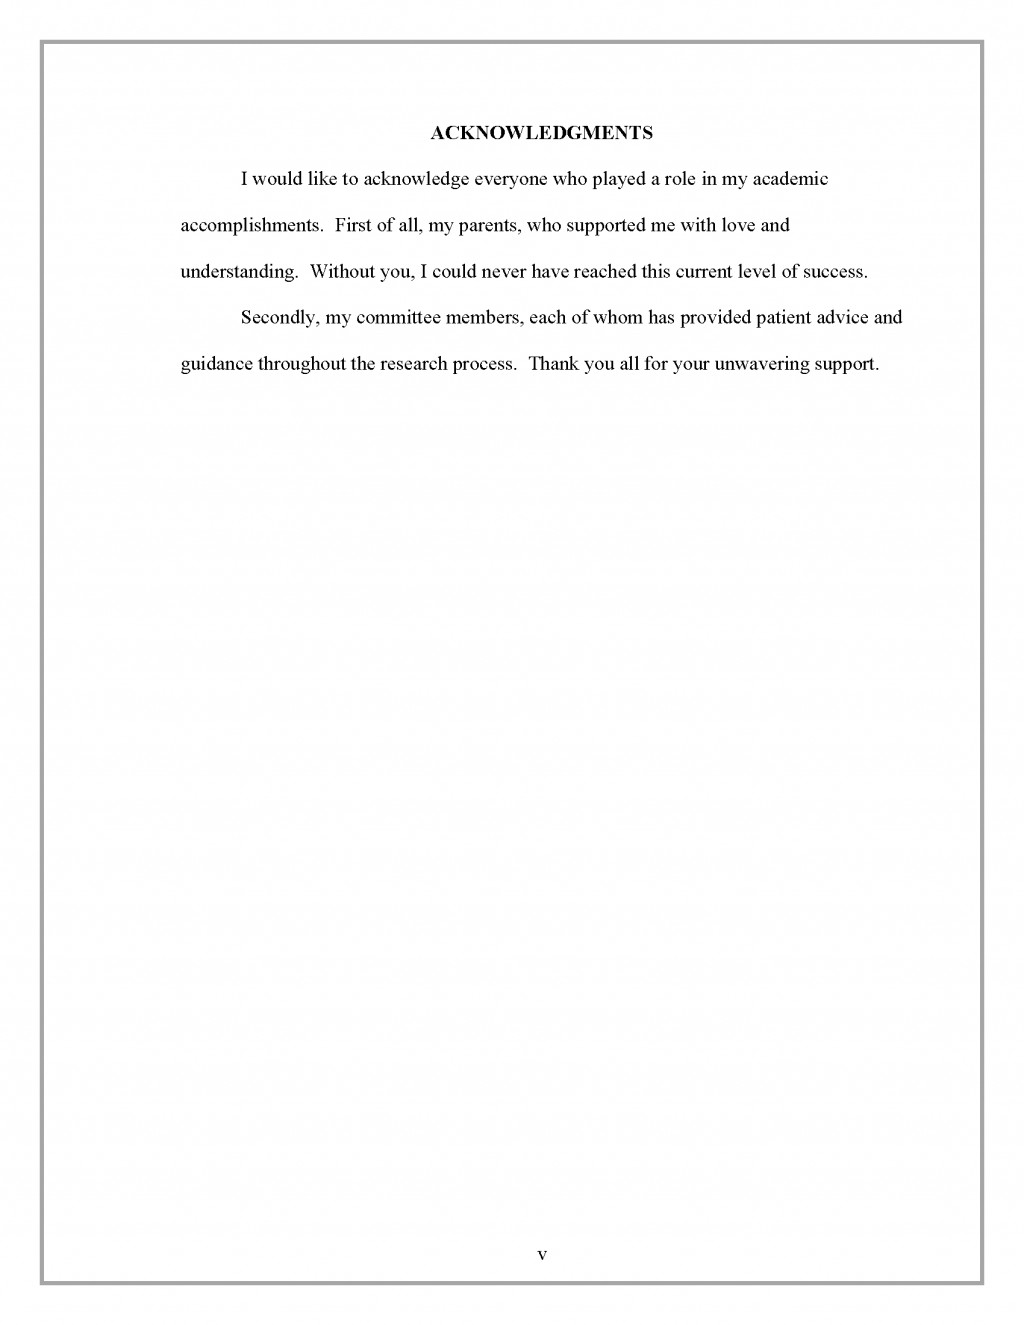 001 Example Of Acknowledgement In Research Paper Acknowledgment Border Remarkable Dedication And Pdf For Students Large